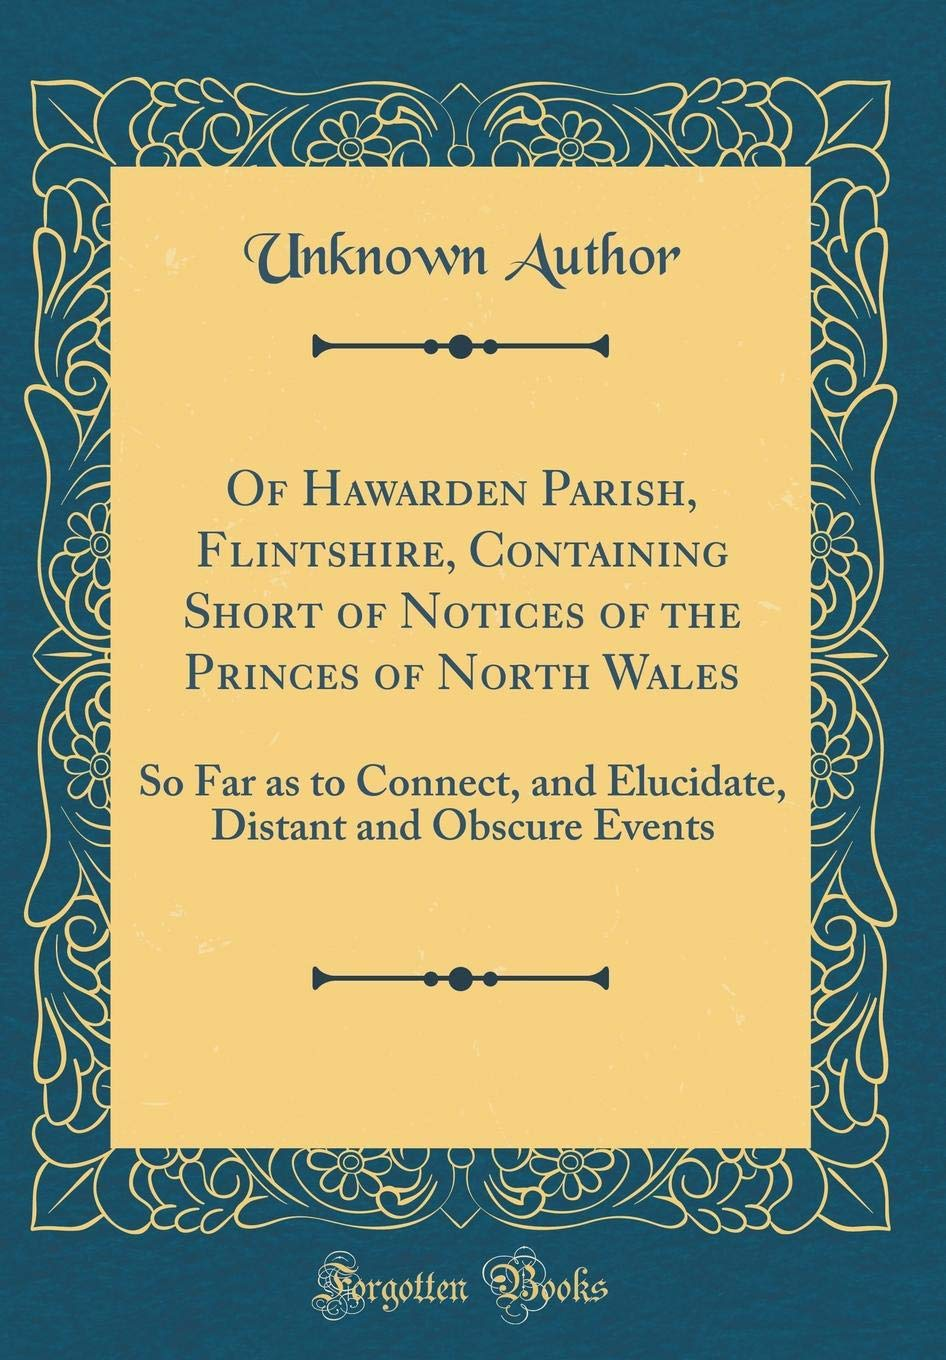 Of Hawarden Parish, Flintshire, Containing Short of Notices of the Princes of North Wales: So Far as to Connect, and Elucidate, Distant and Obscure Events (Classic Reprint) pdf epub